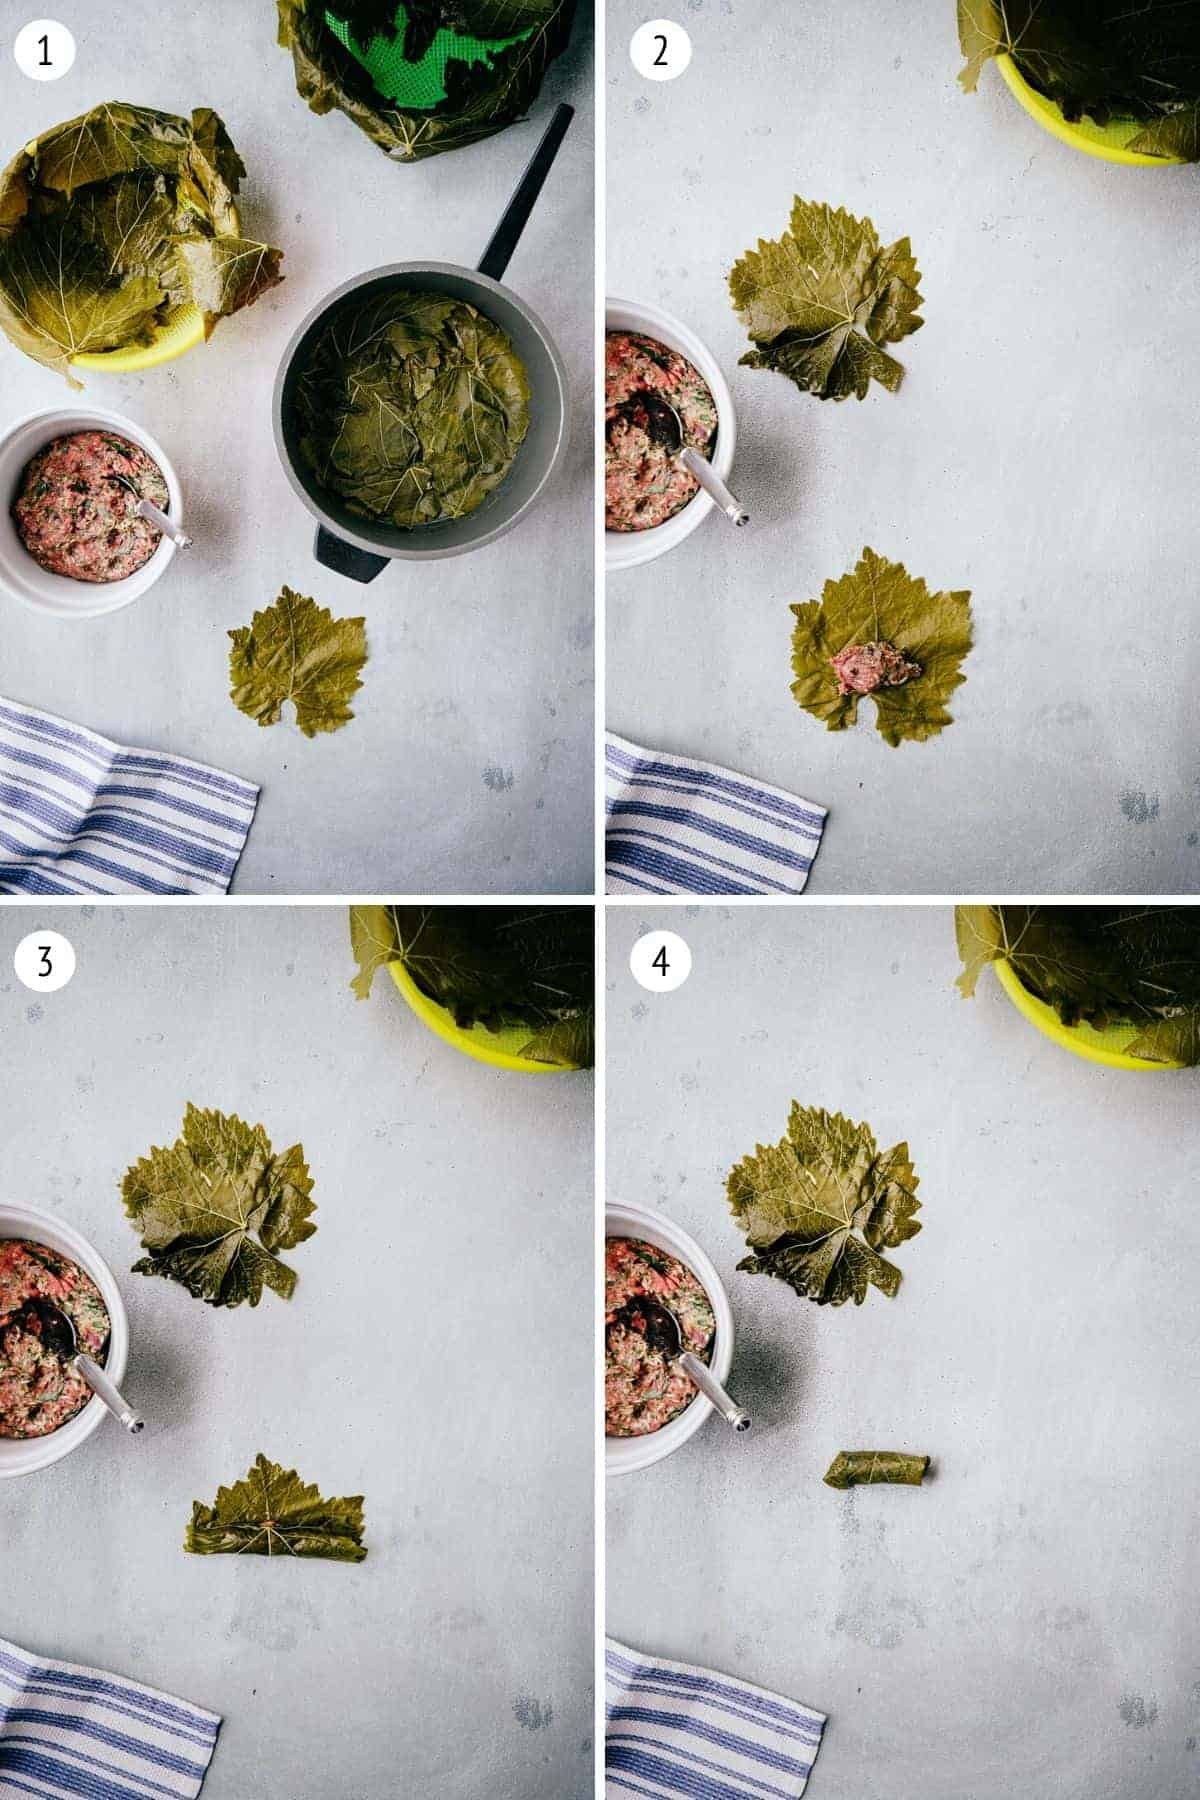 instructions on how to make Greek dolmades